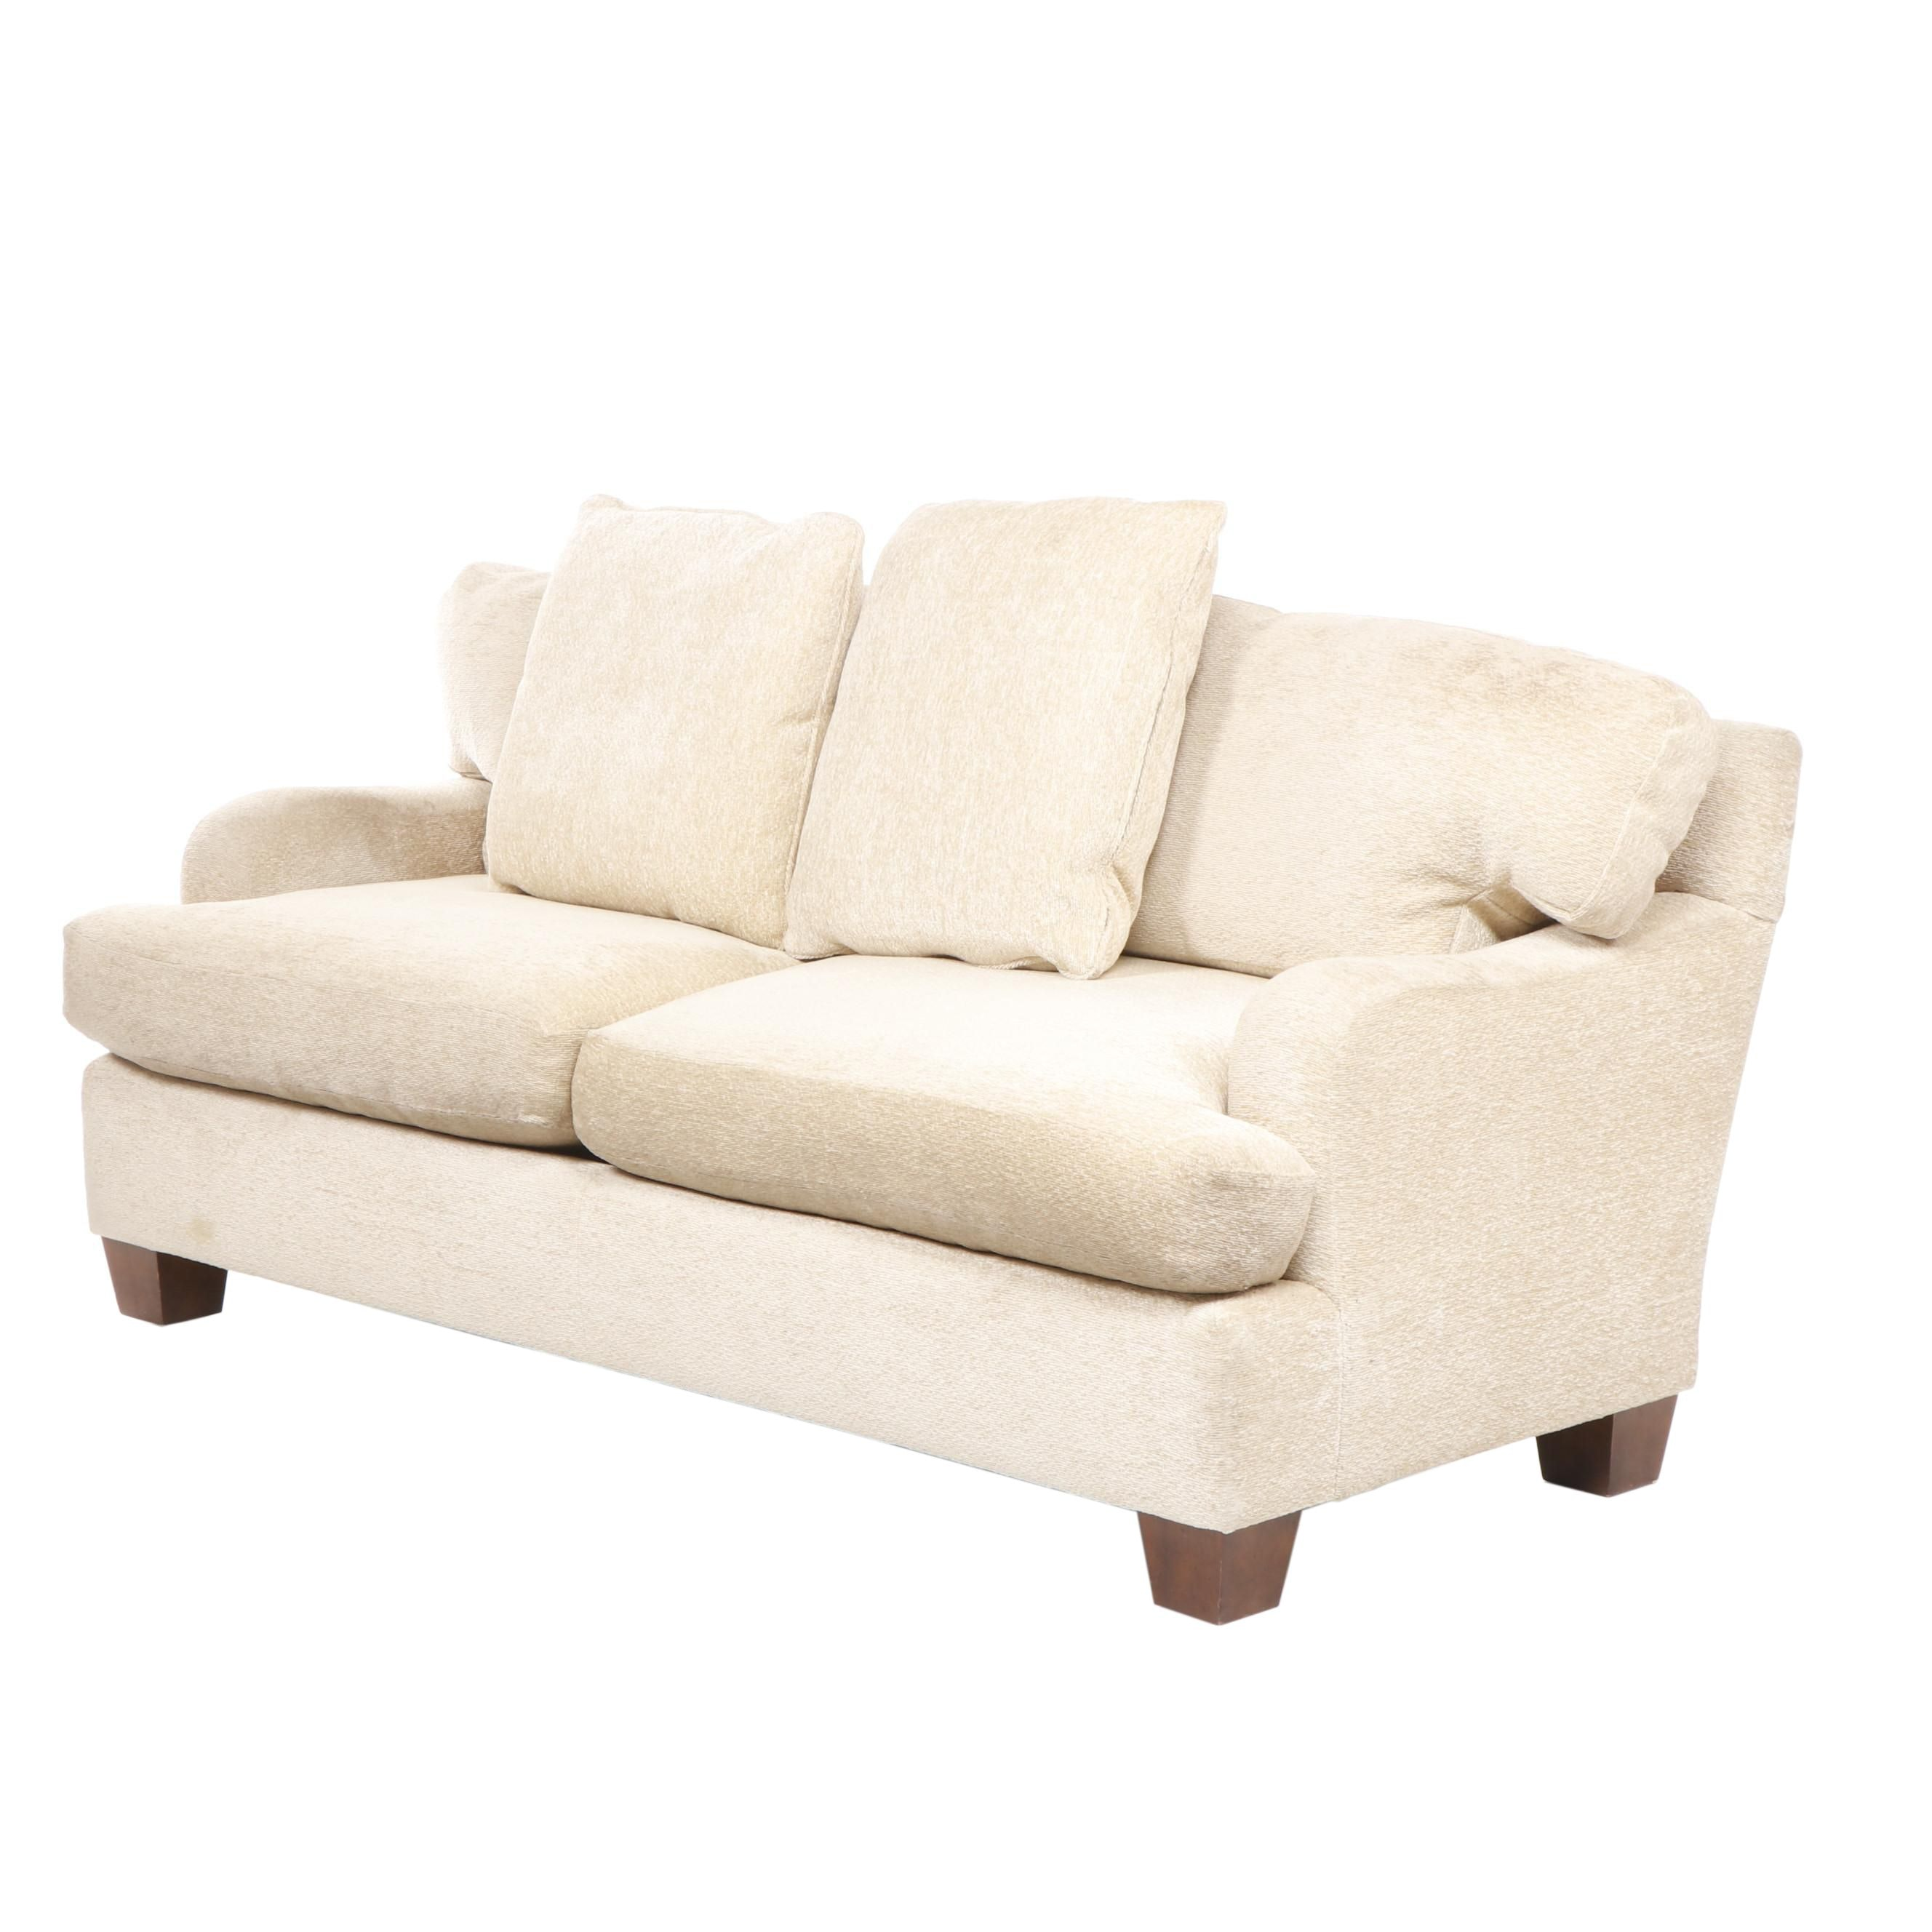 Contemporary Dapha Ltd. Beige Upholstered Sofa